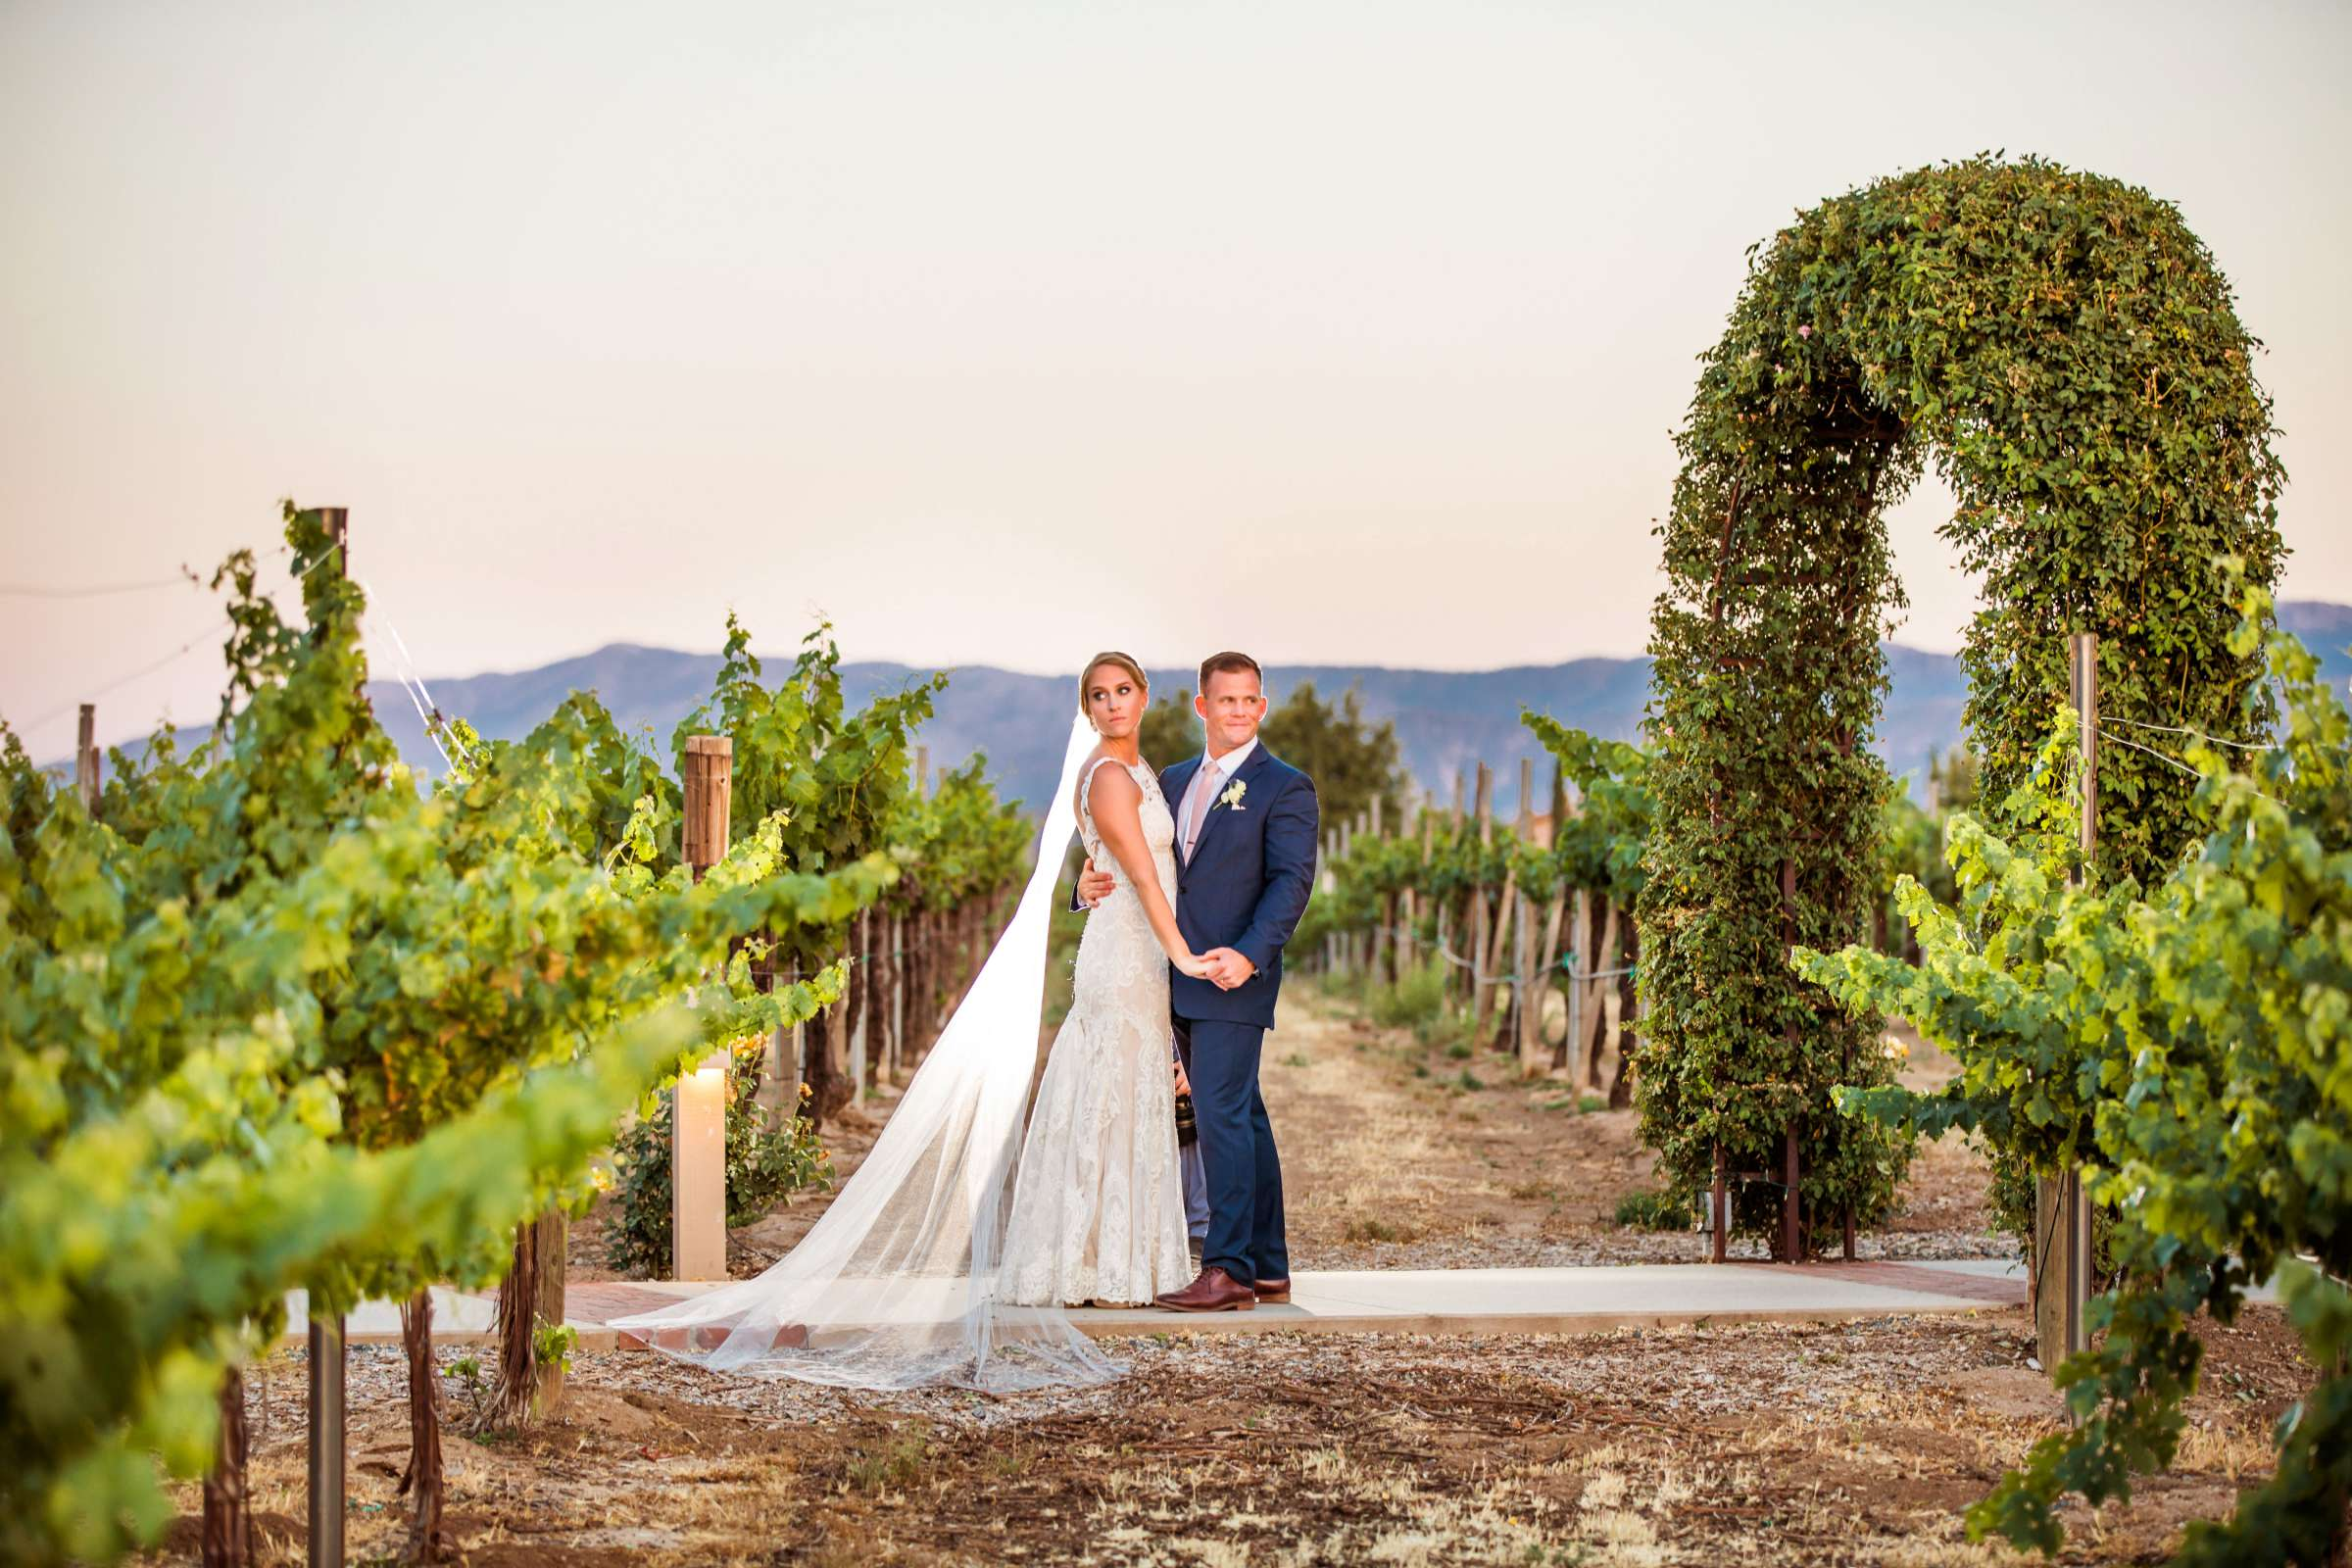 Ponte Estate Winery Wedding, Kelsey and Andrew Wedding Photo #22 by True Photography